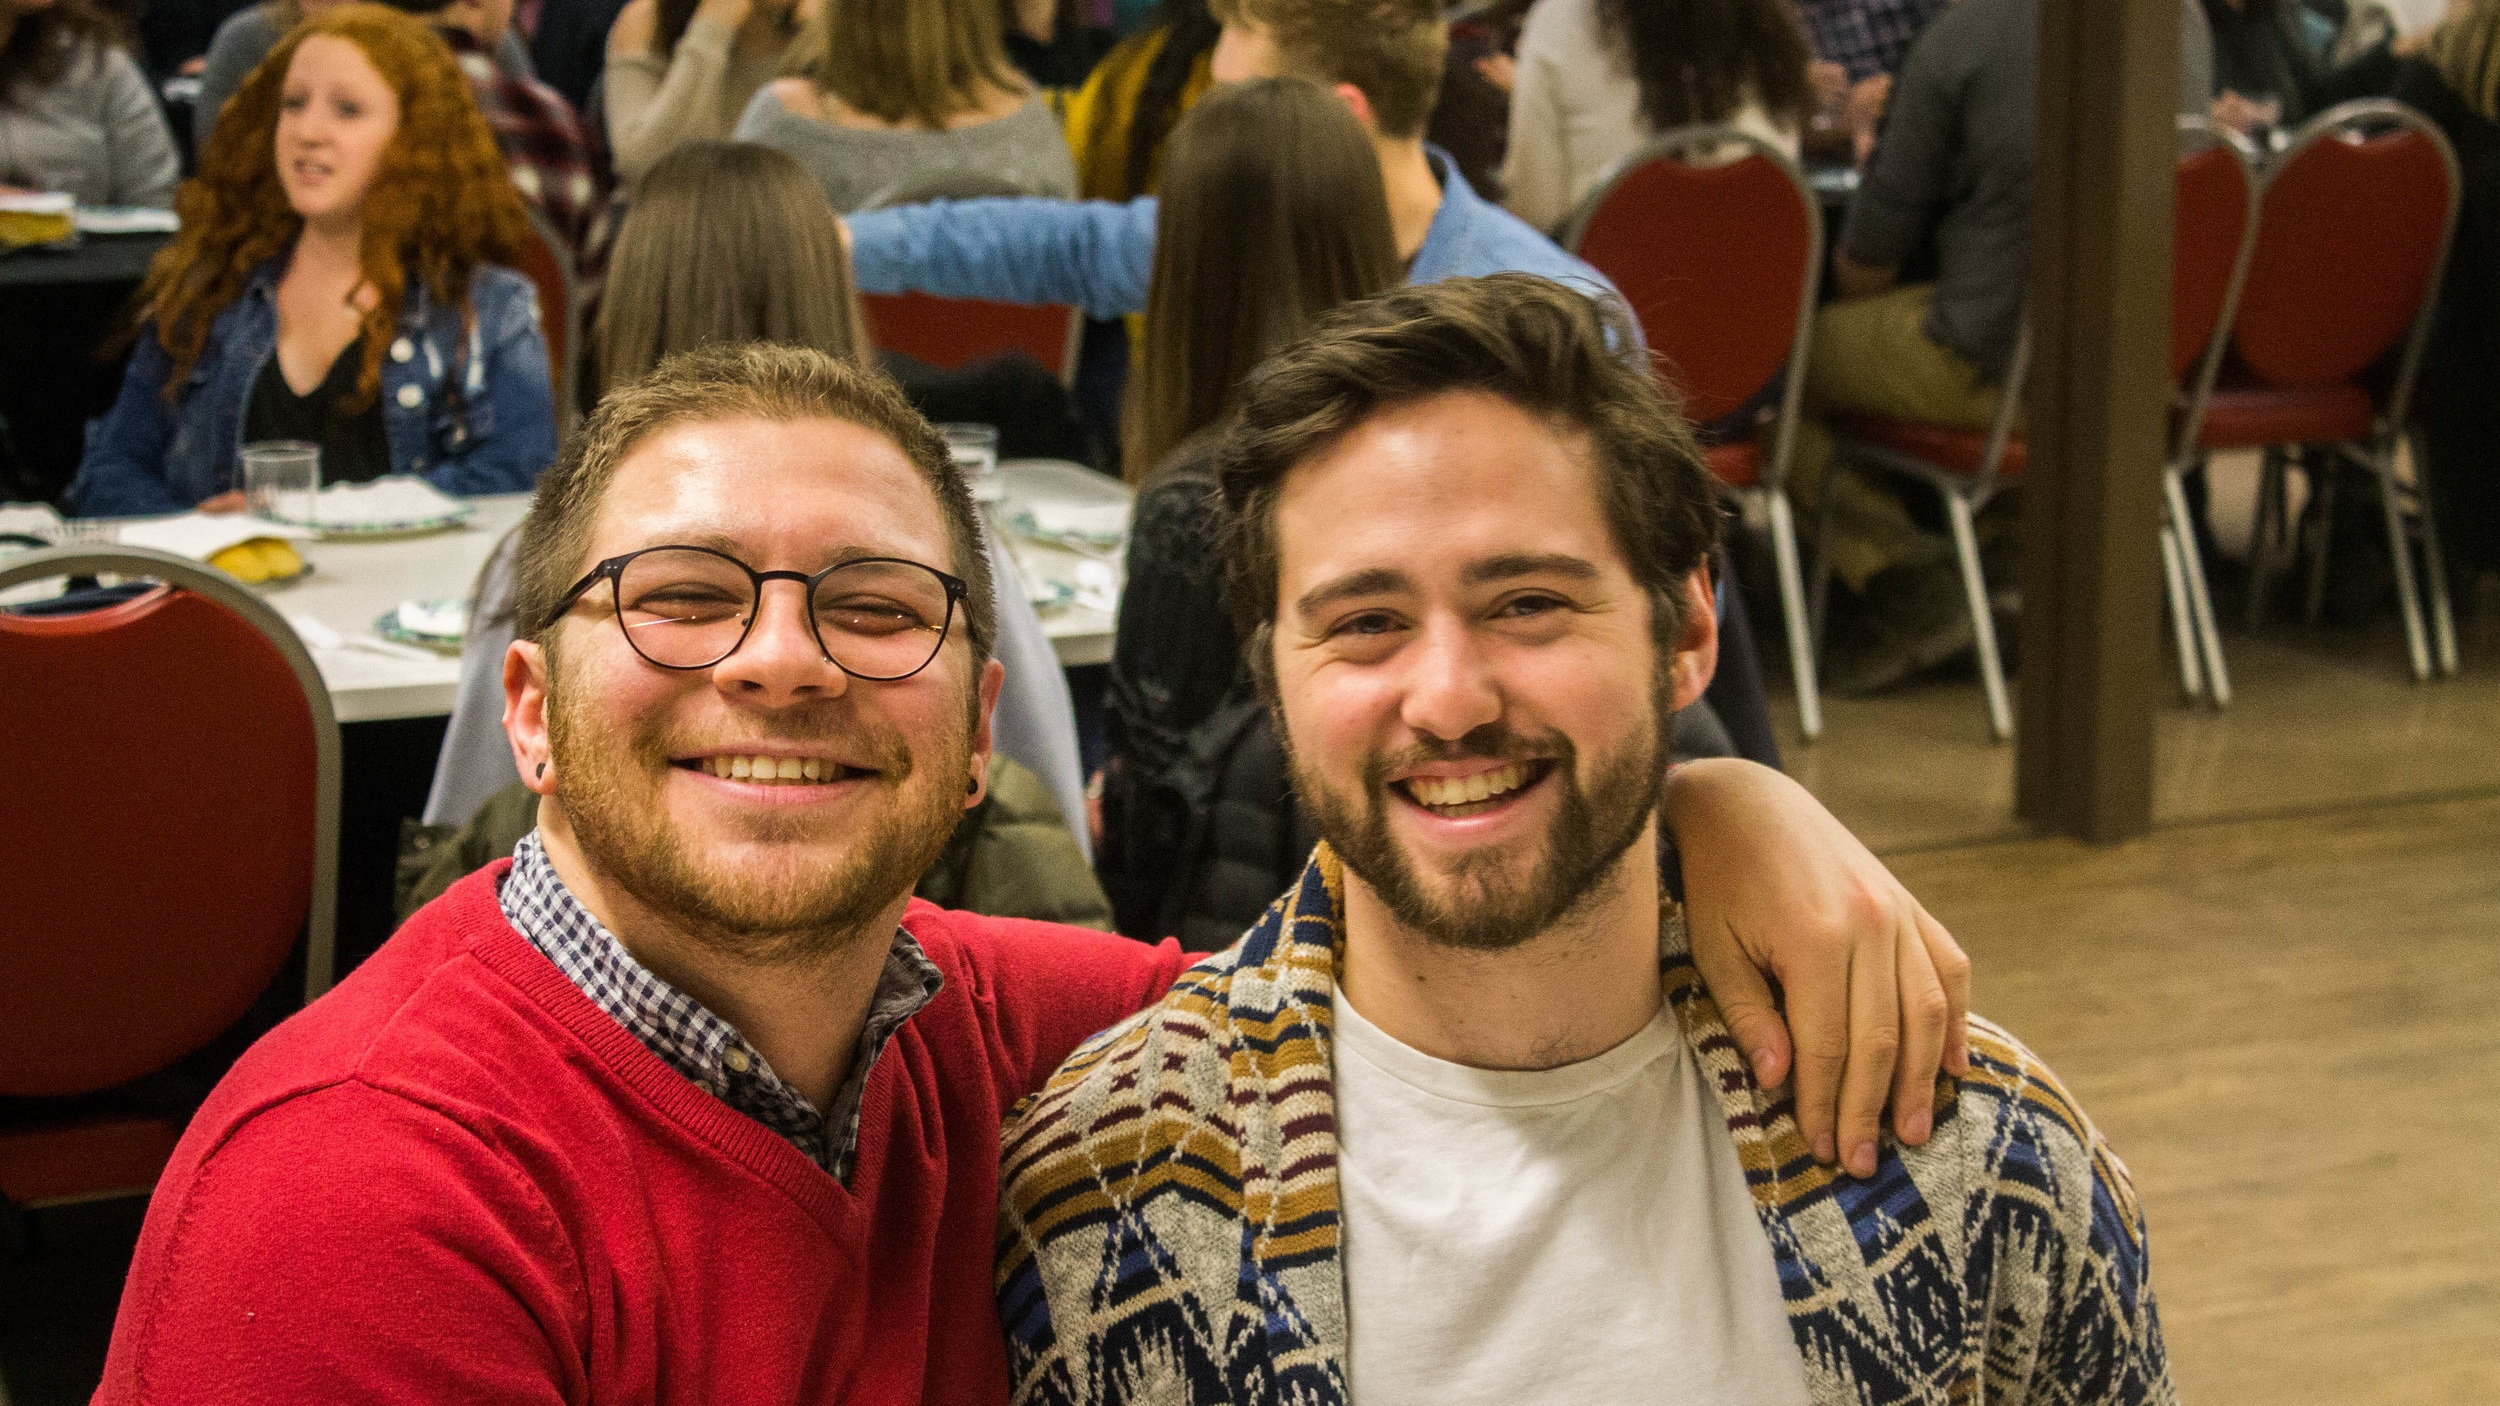 Adopt a Shabbat - Give the gift of a Shabbat dinner at Hillel!